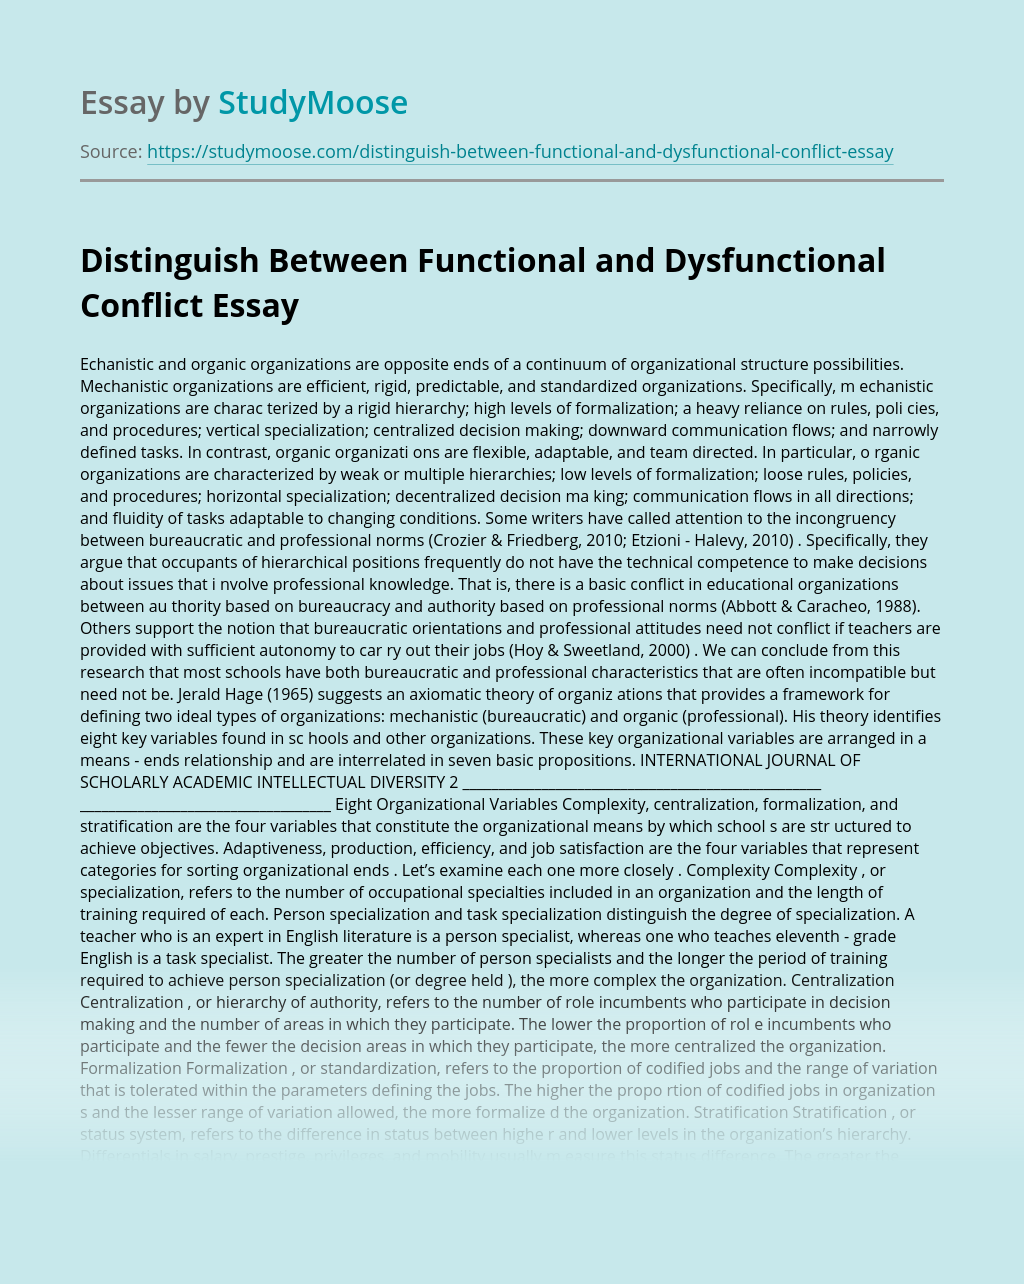 Distinguish Between Functional and Dysfunctional Conflict